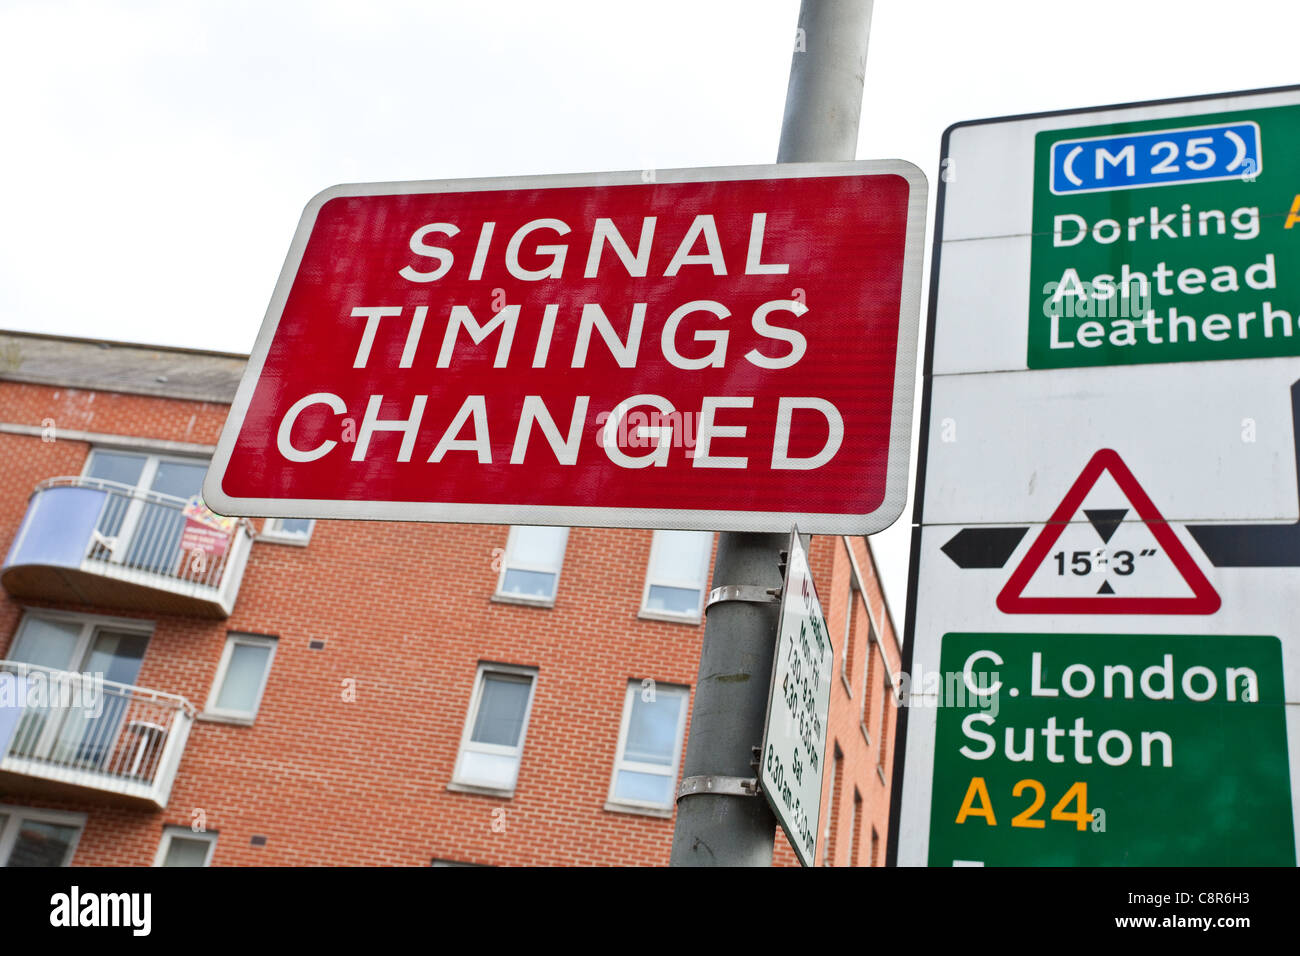 Signal timings changed sign post in the UK - Stock Image